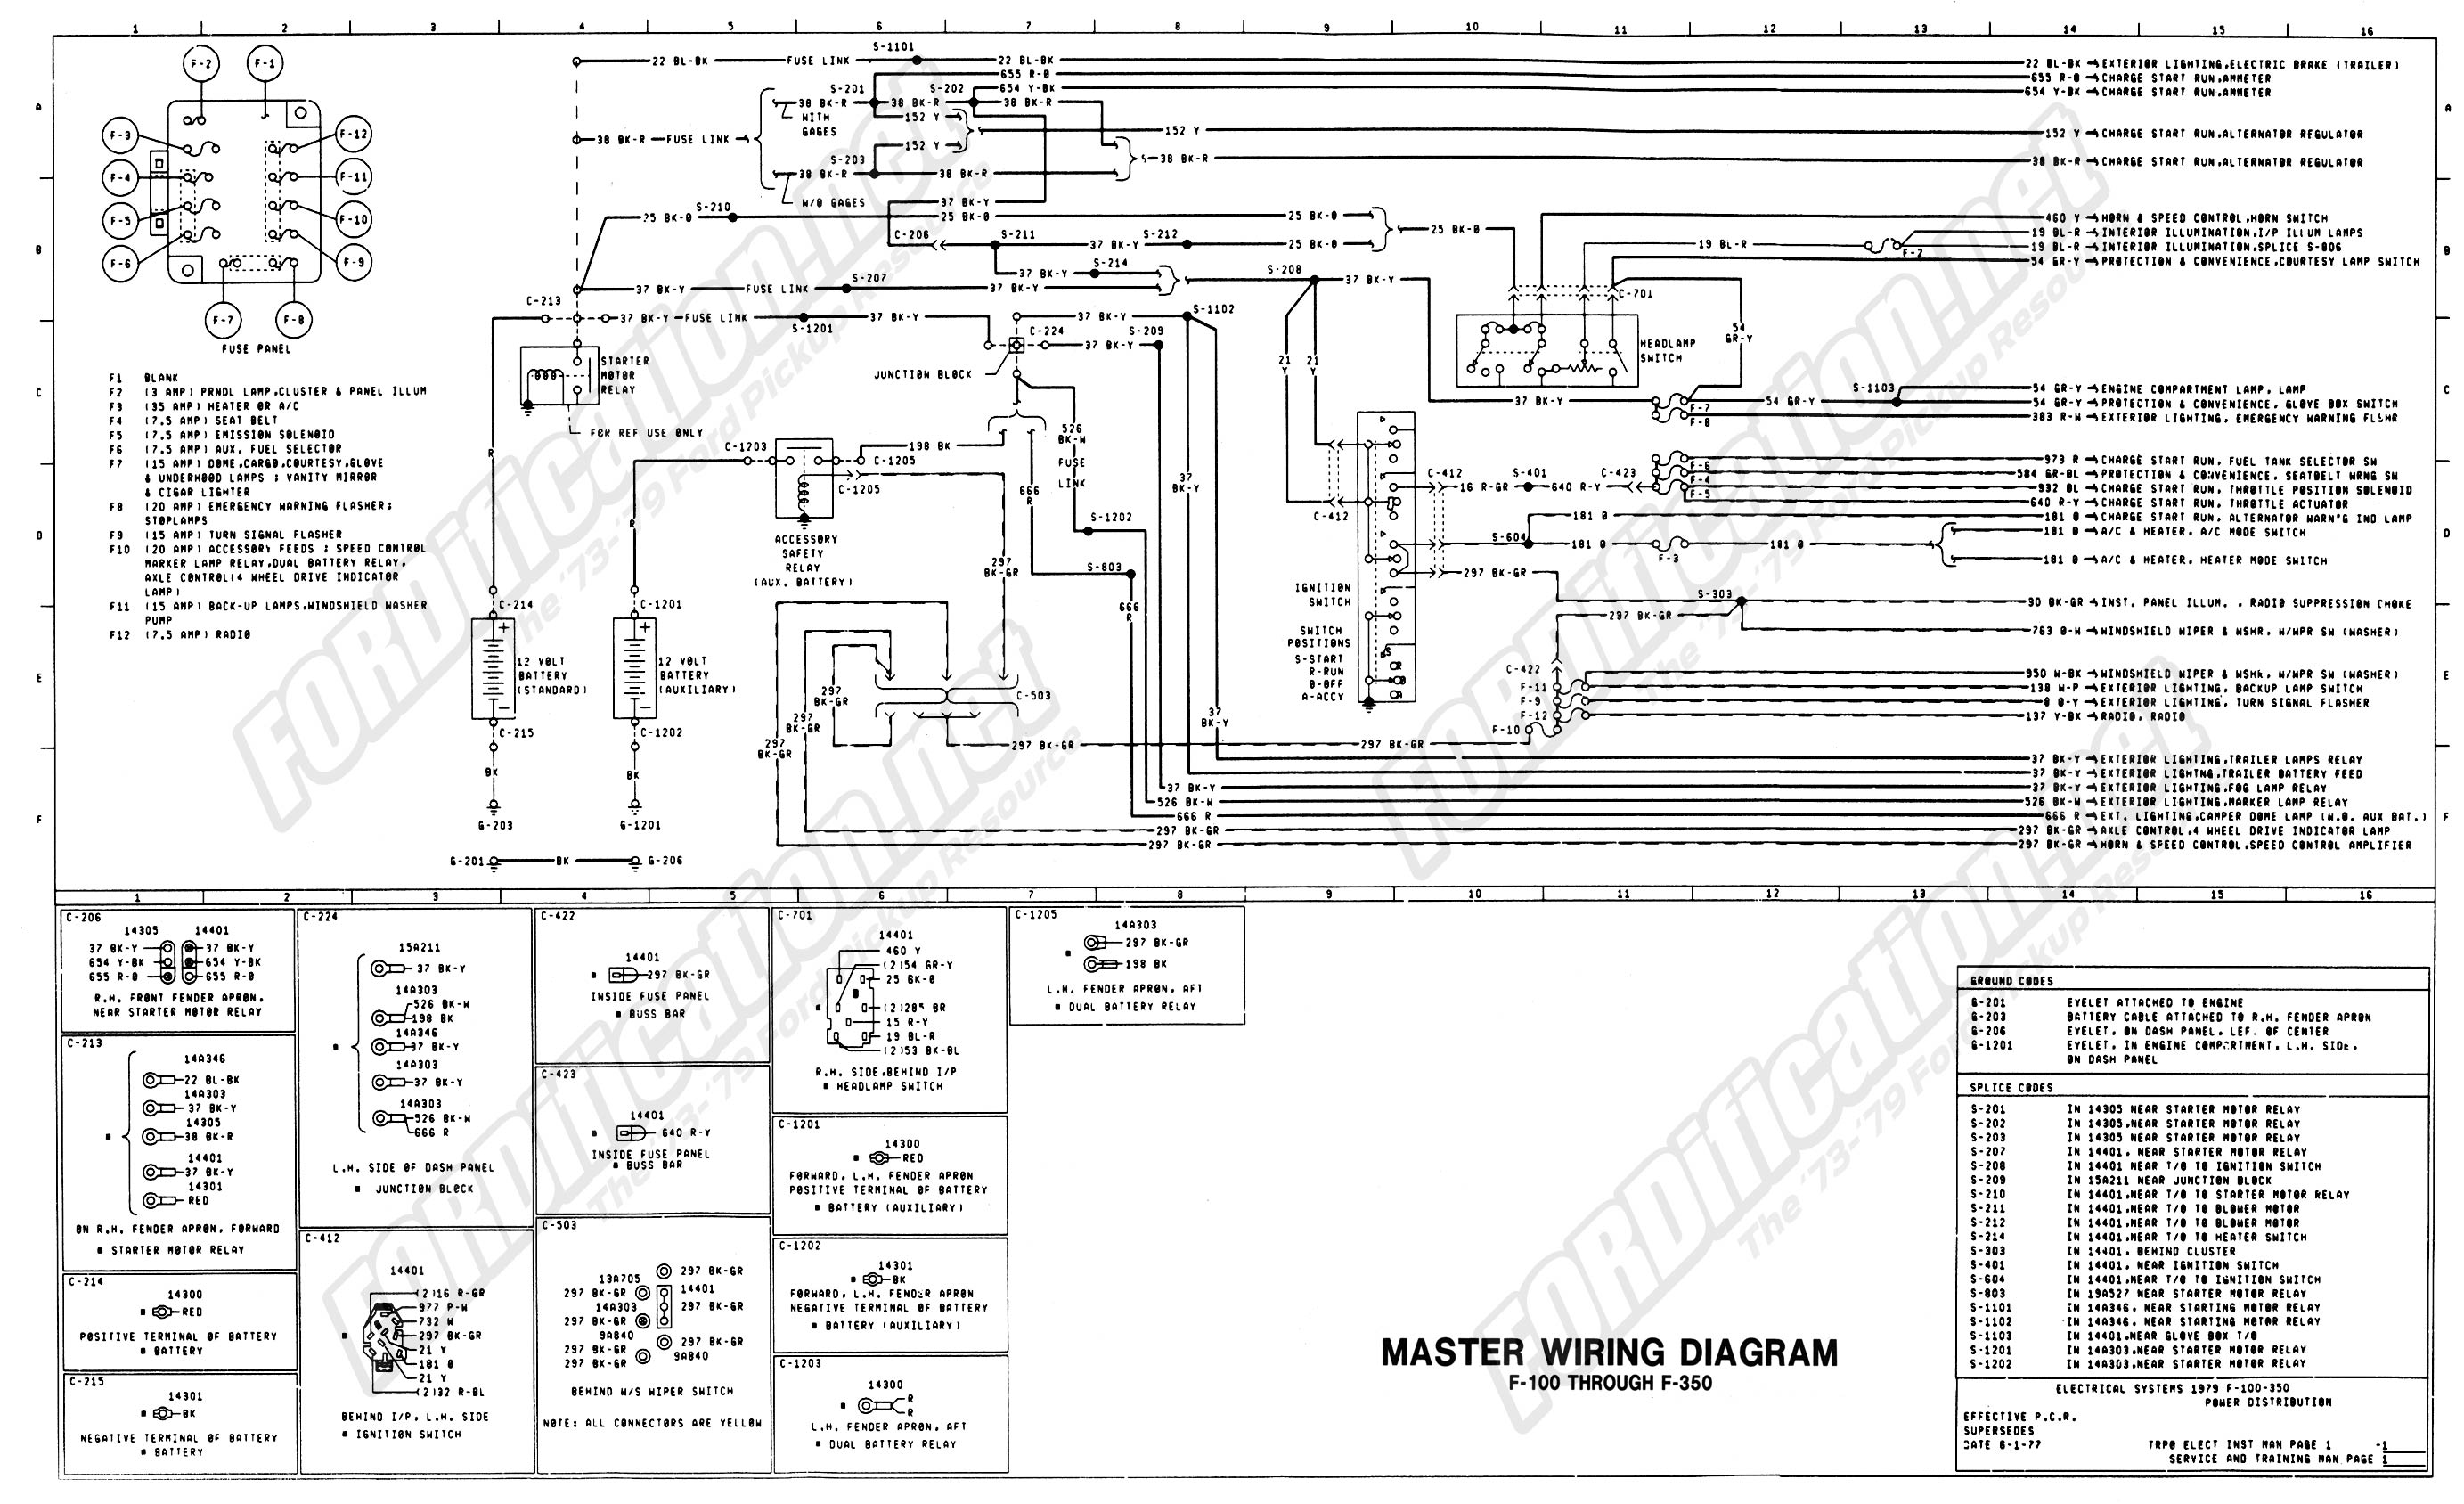 wiring_79master_1of9 1973 1979 ford truck wiring diagrams & schematics fordification net  at readyjetset.co